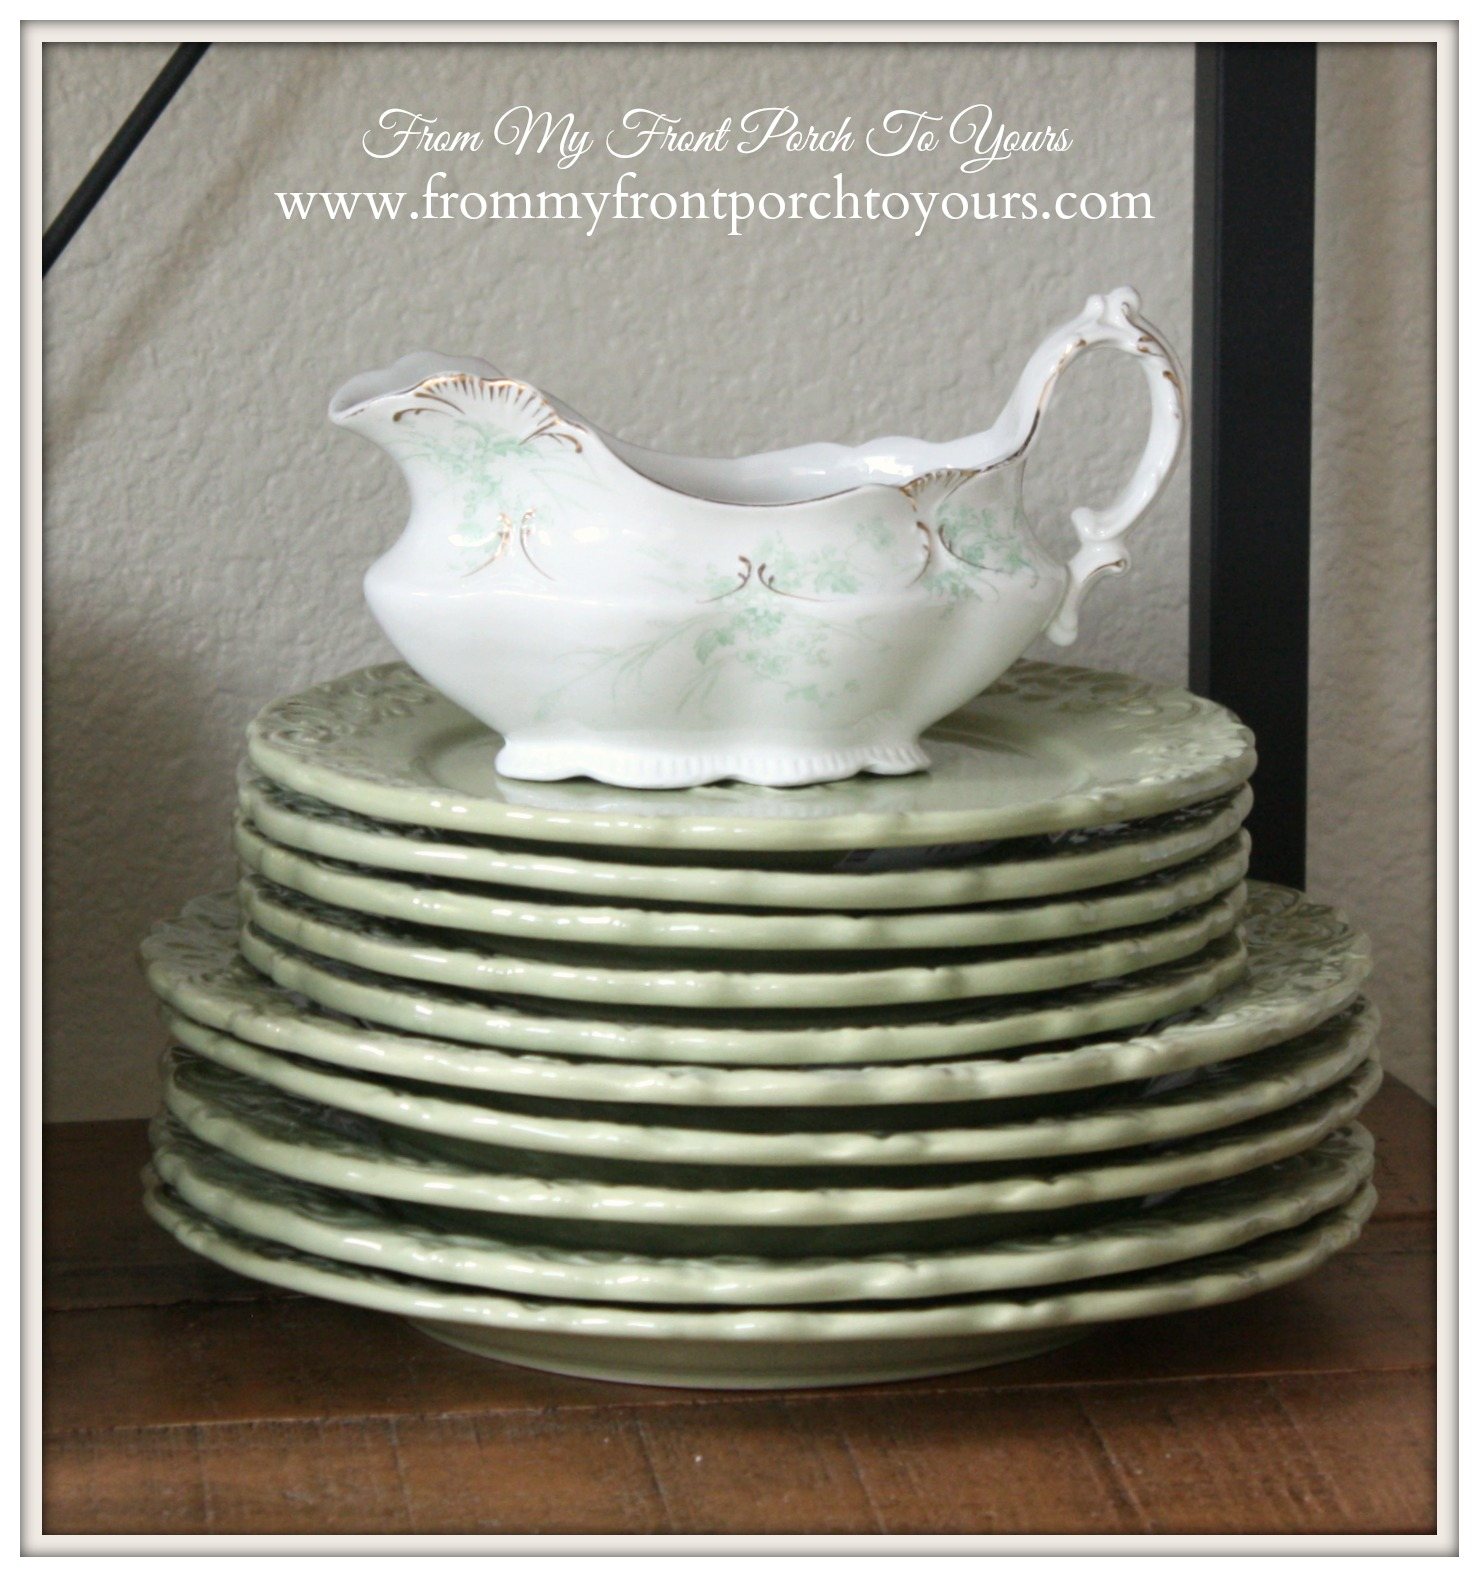 French Farmhouse Spring Breakfast Nook- From My Front Porch To Yours- Vintage Green Transferware